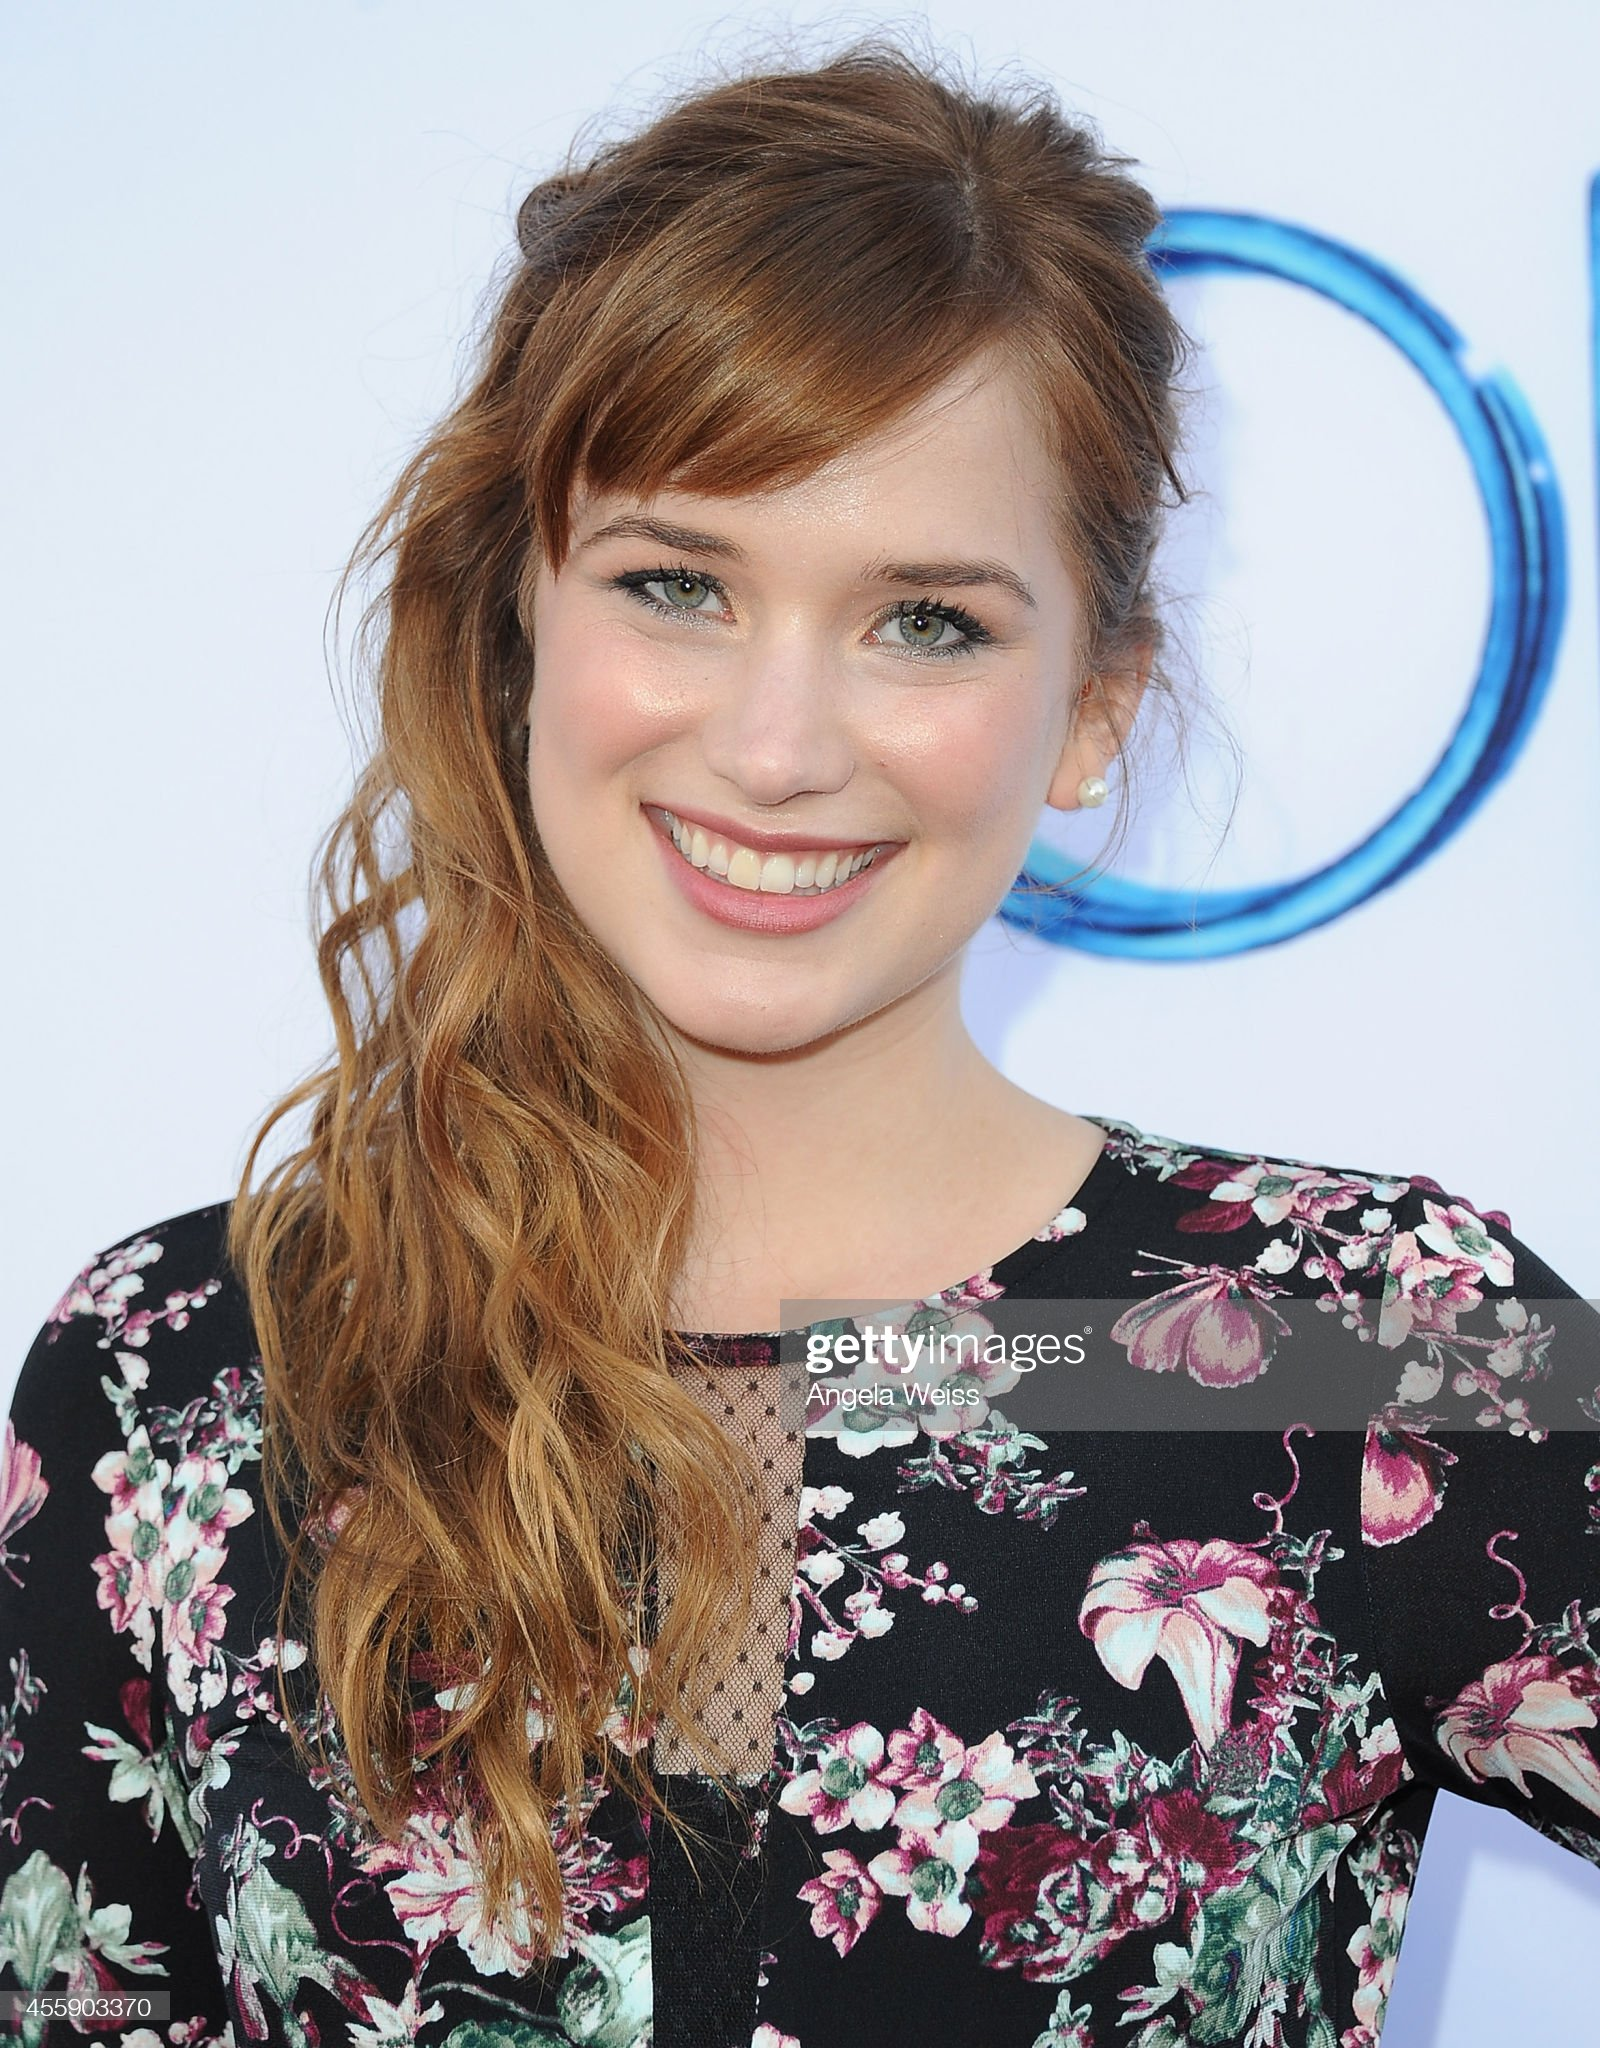 DEBATE sobre guapura de famosos y famosas - Página 42 Actress-elizabeth-lail-attends-abcs-once-upon-a-time-season-4-red-picture-id455903370?s=2048x2048